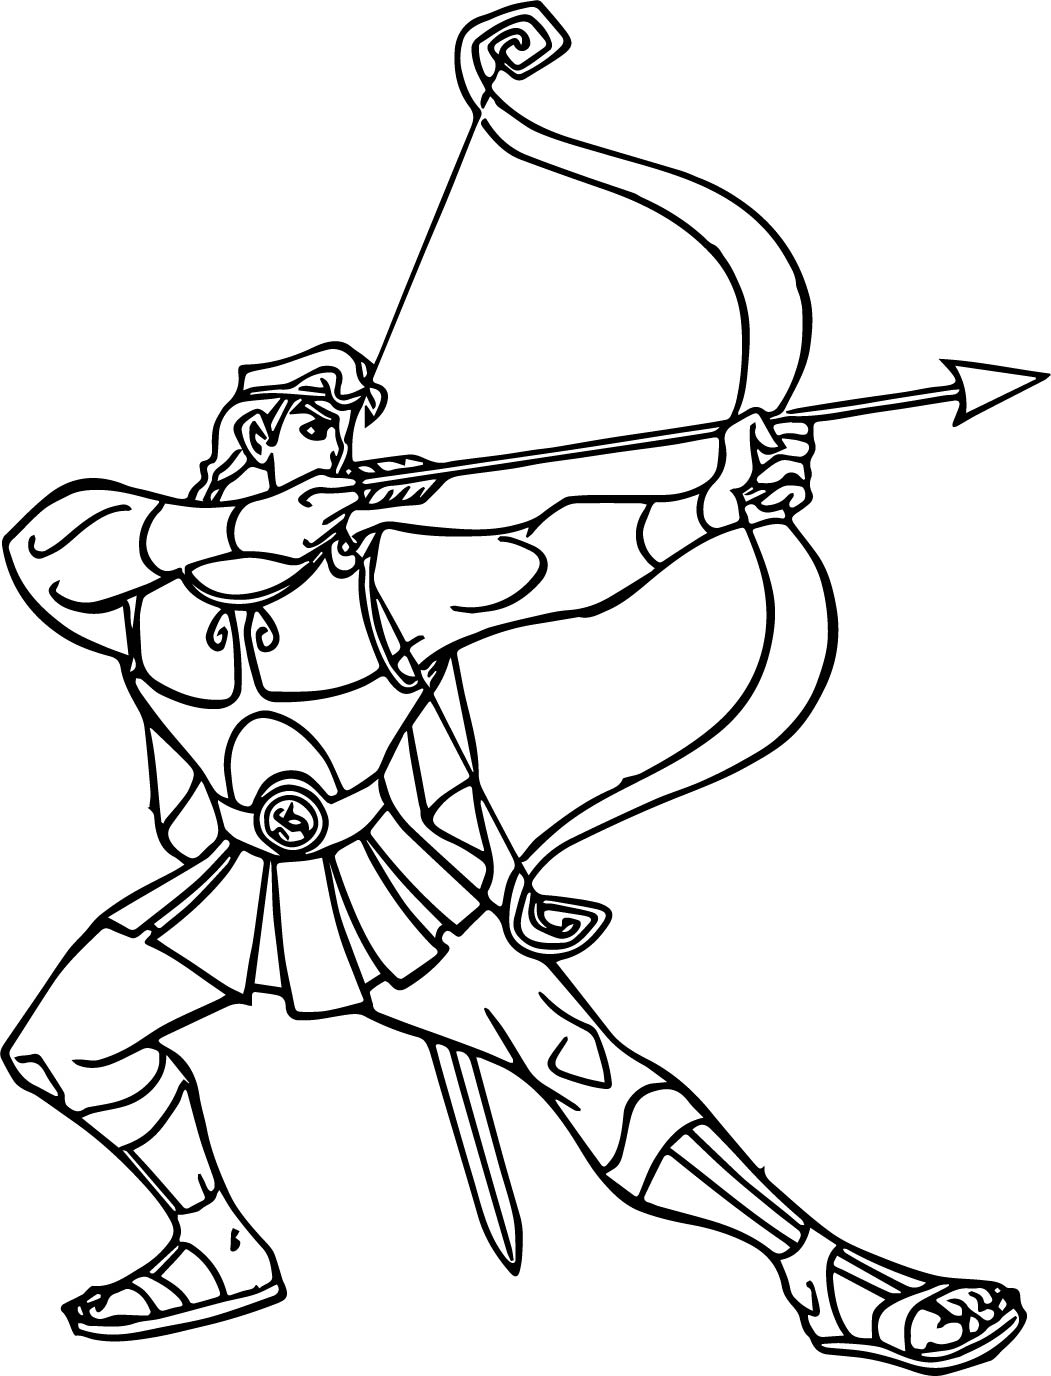 hercules coloring pages - awesome hercules coloring pages 60 for your free colouring pages with hercules coloring pages